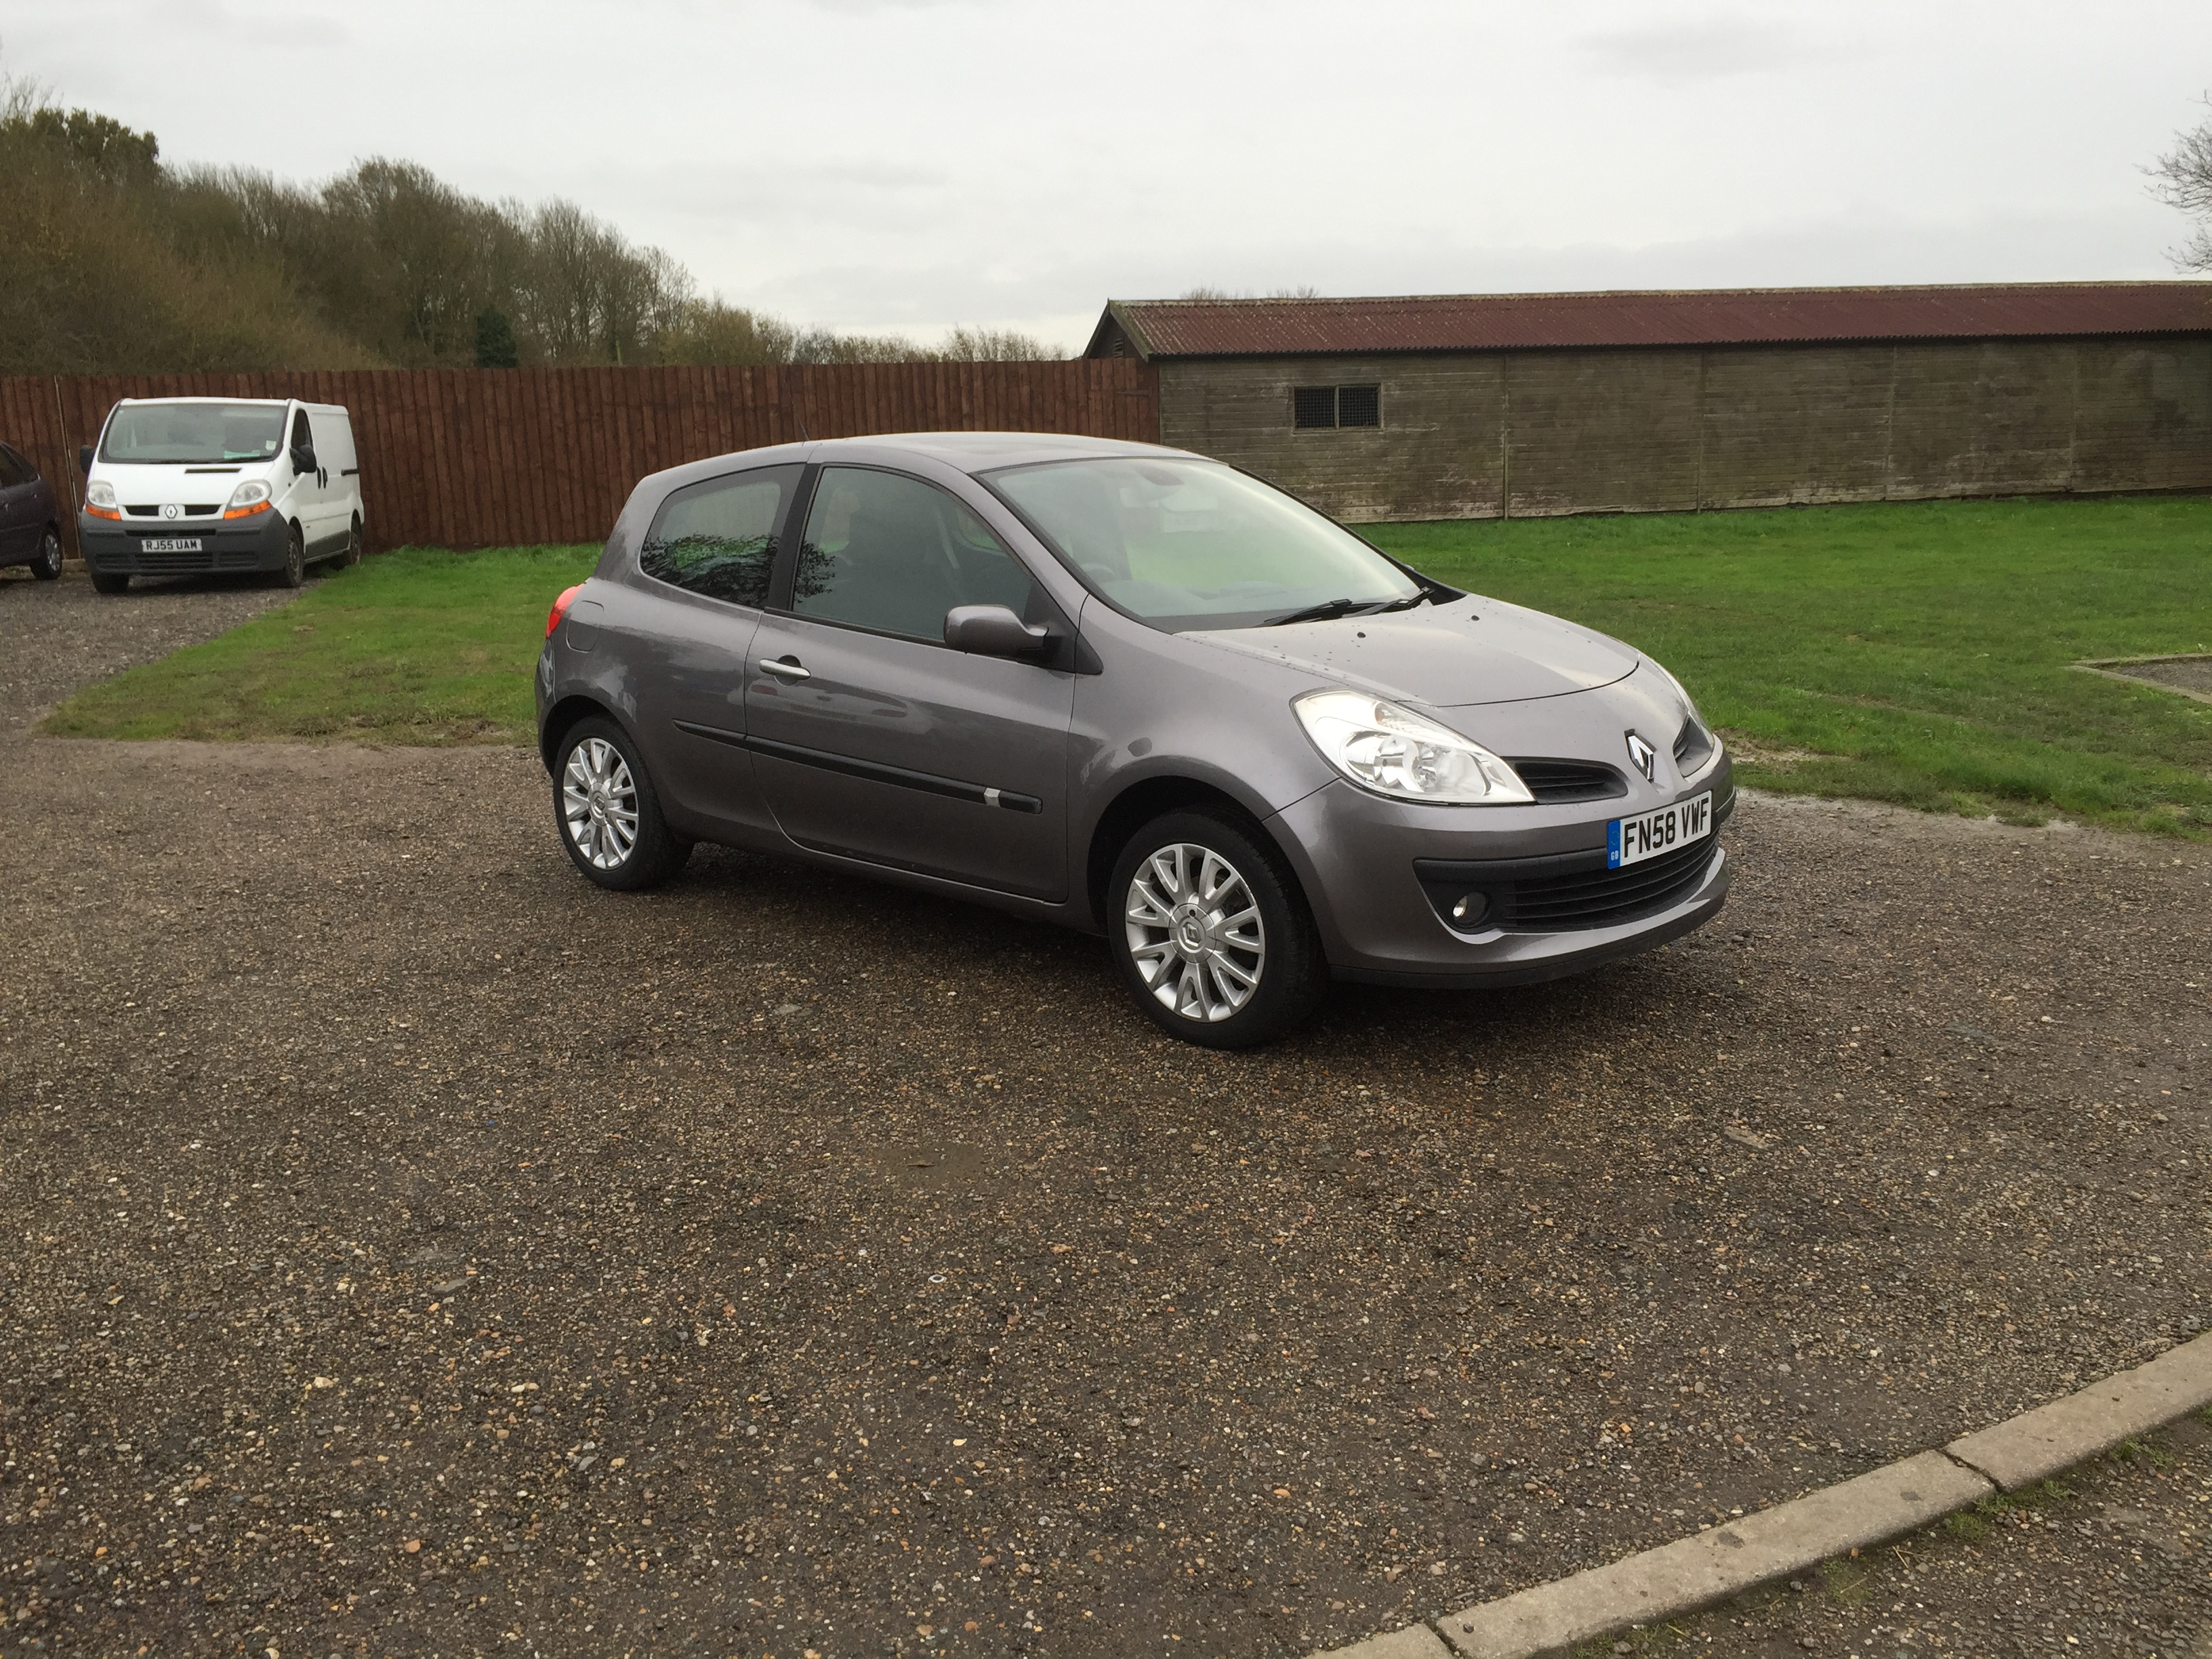 renault clio 1 2 dynamique tce 58 reg sold ymark vehicle services. Black Bedroom Furniture Sets. Home Design Ideas